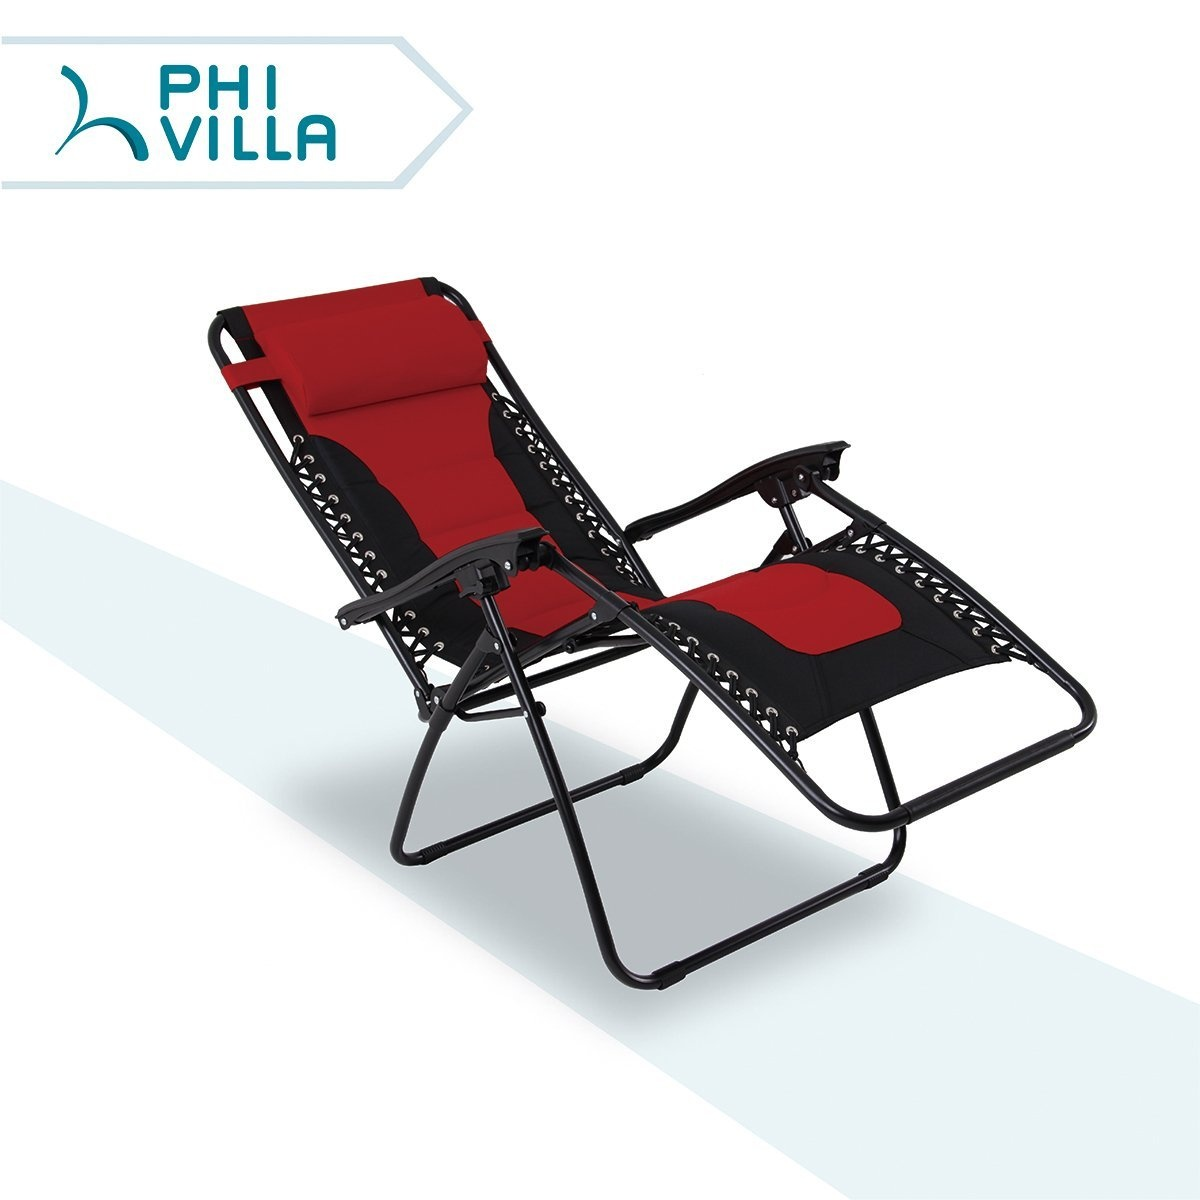 Lounge Chair Patio Phi Villa Padded Zero Gravity Lounge Chair Patio Foldable Adjustable Reclining For Outdoor Yard Porch Red